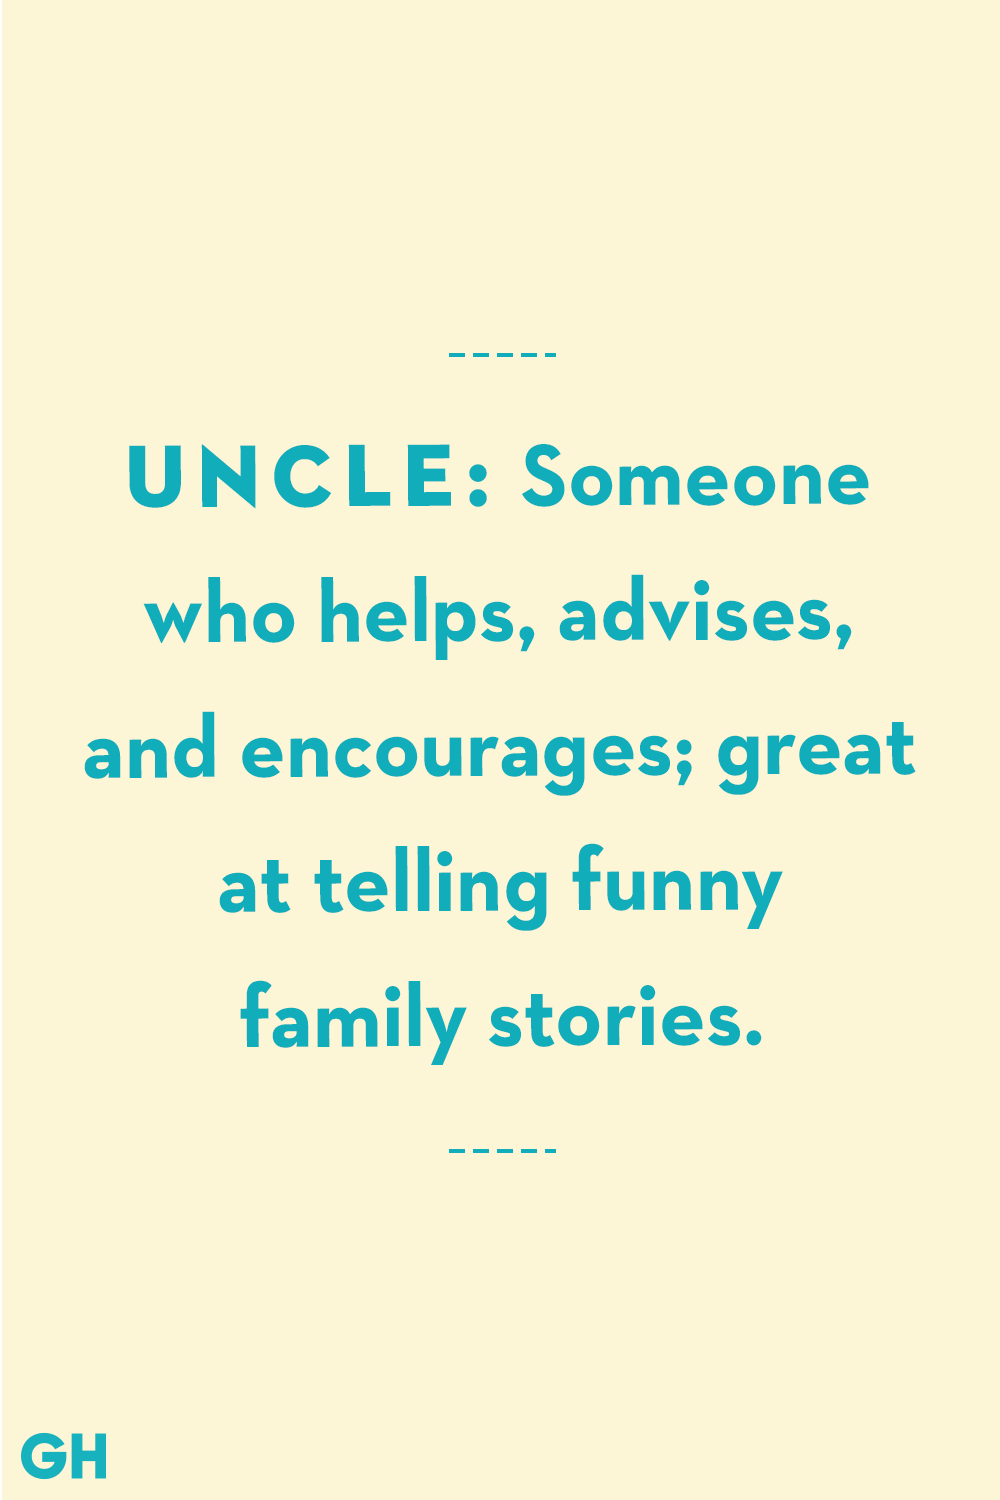 5 Greatest Uncle Quotes - Funny and Loving Quotes About Uncles